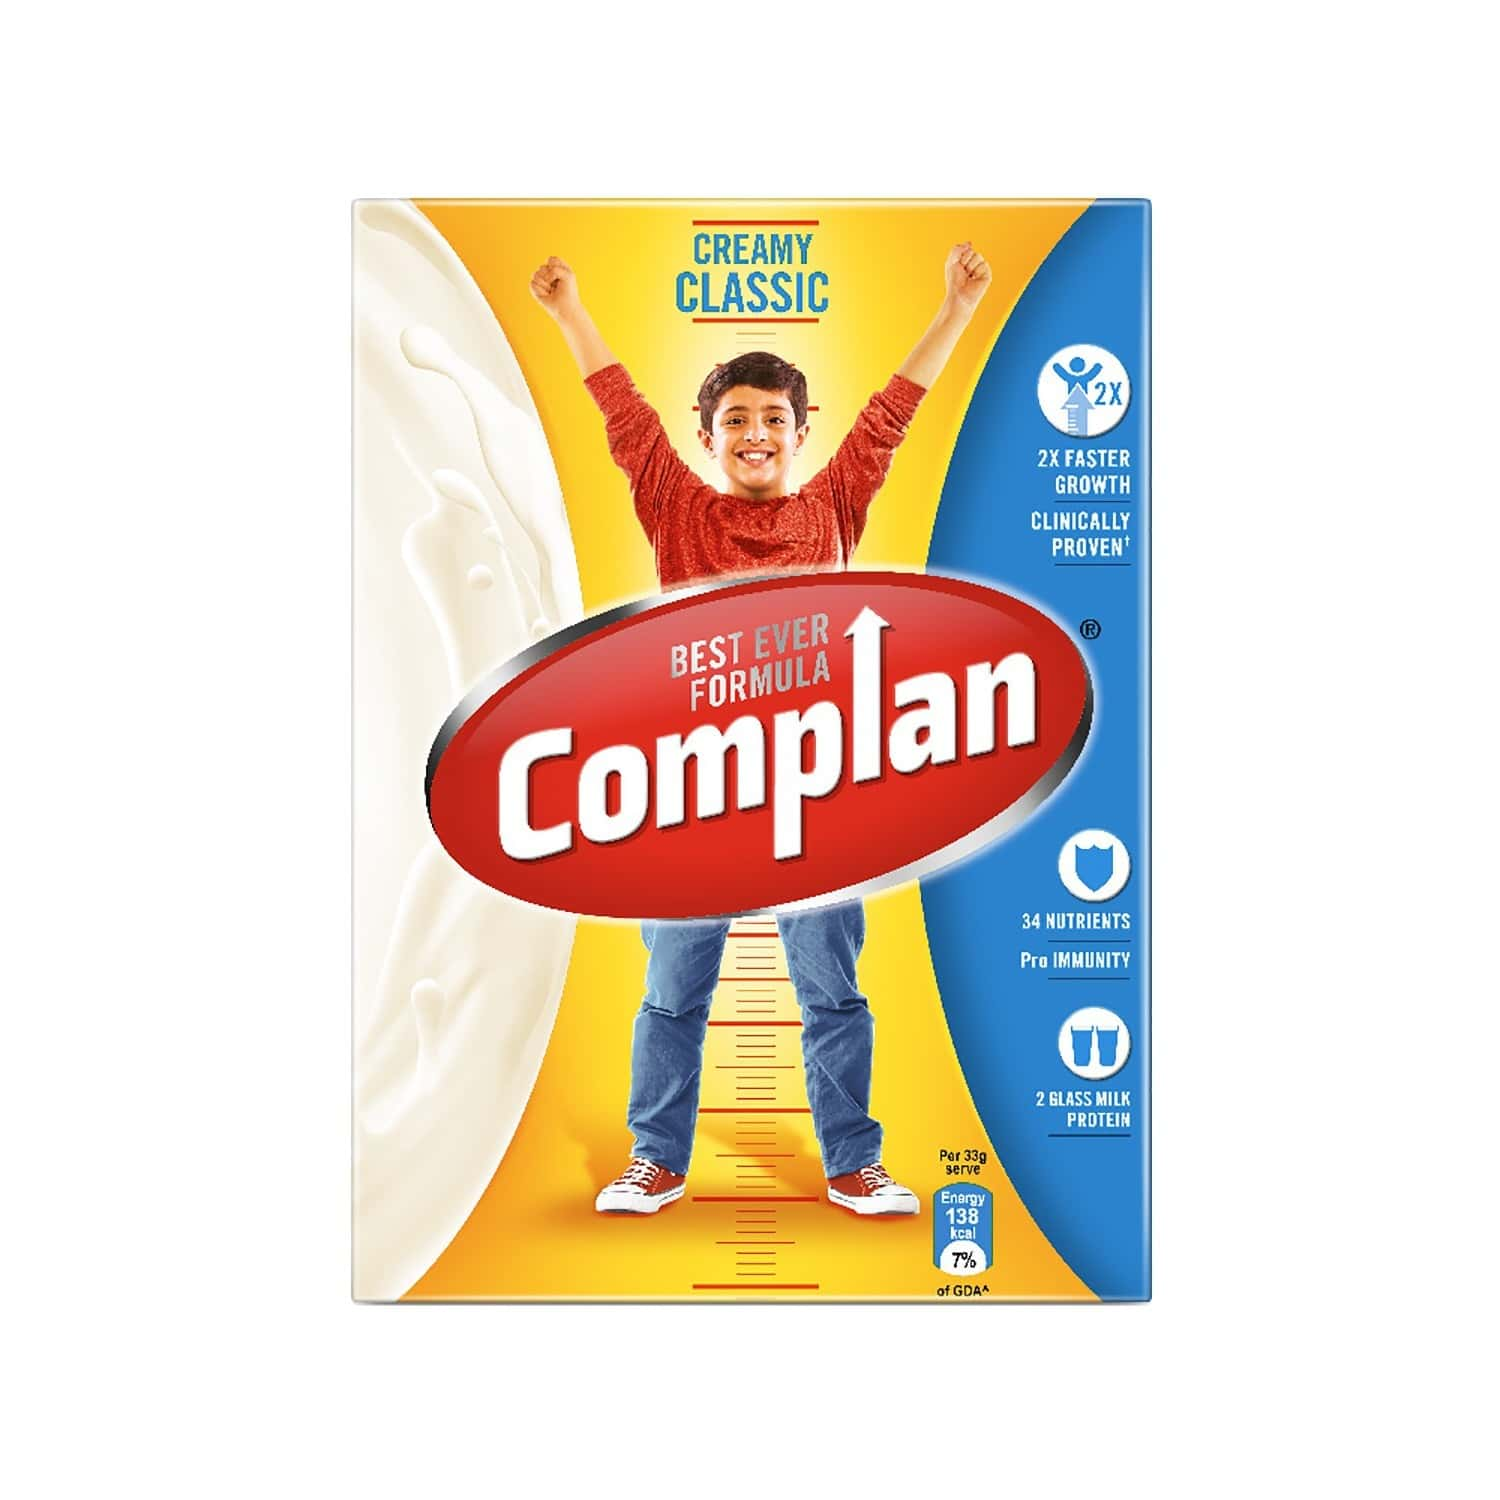 Complan Creamy Classic Nutrition Drink Box Of 200 G